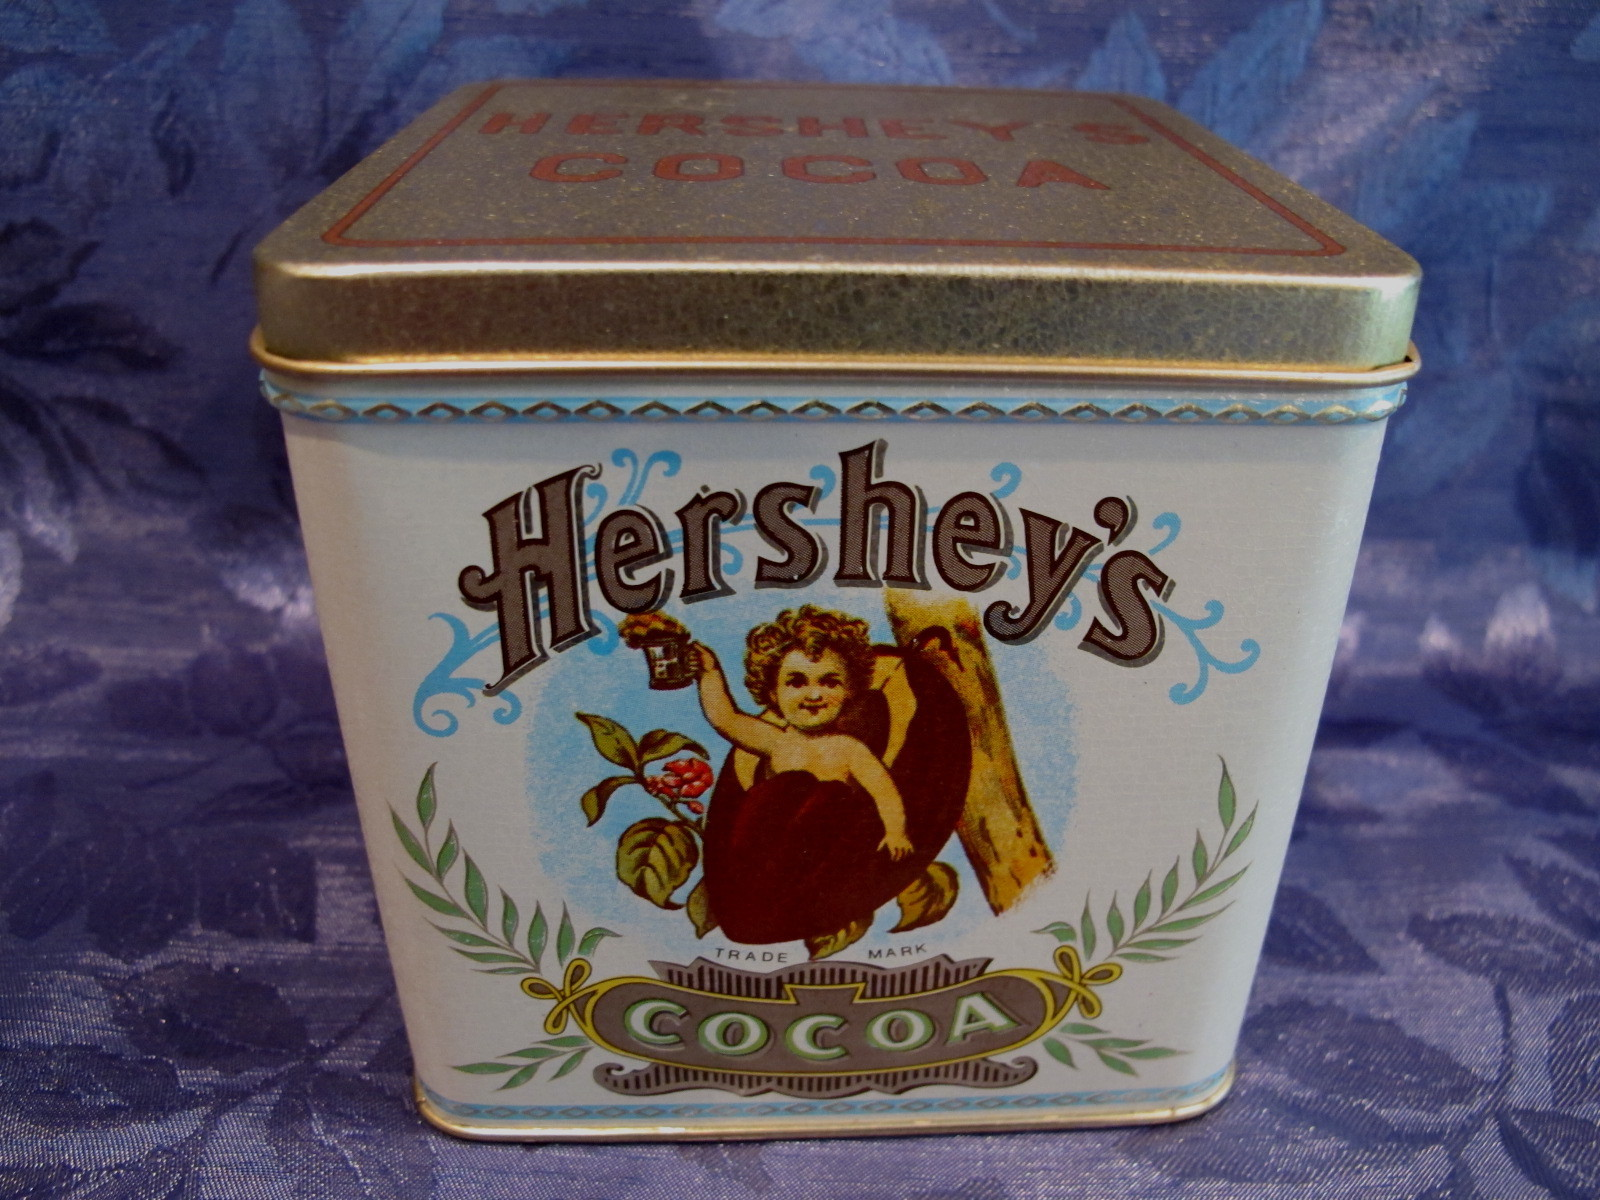 HERSHEY'S CHOCOLATE Tin HERSHEYS COCOA POD Souvenir Can Vintage Collectible